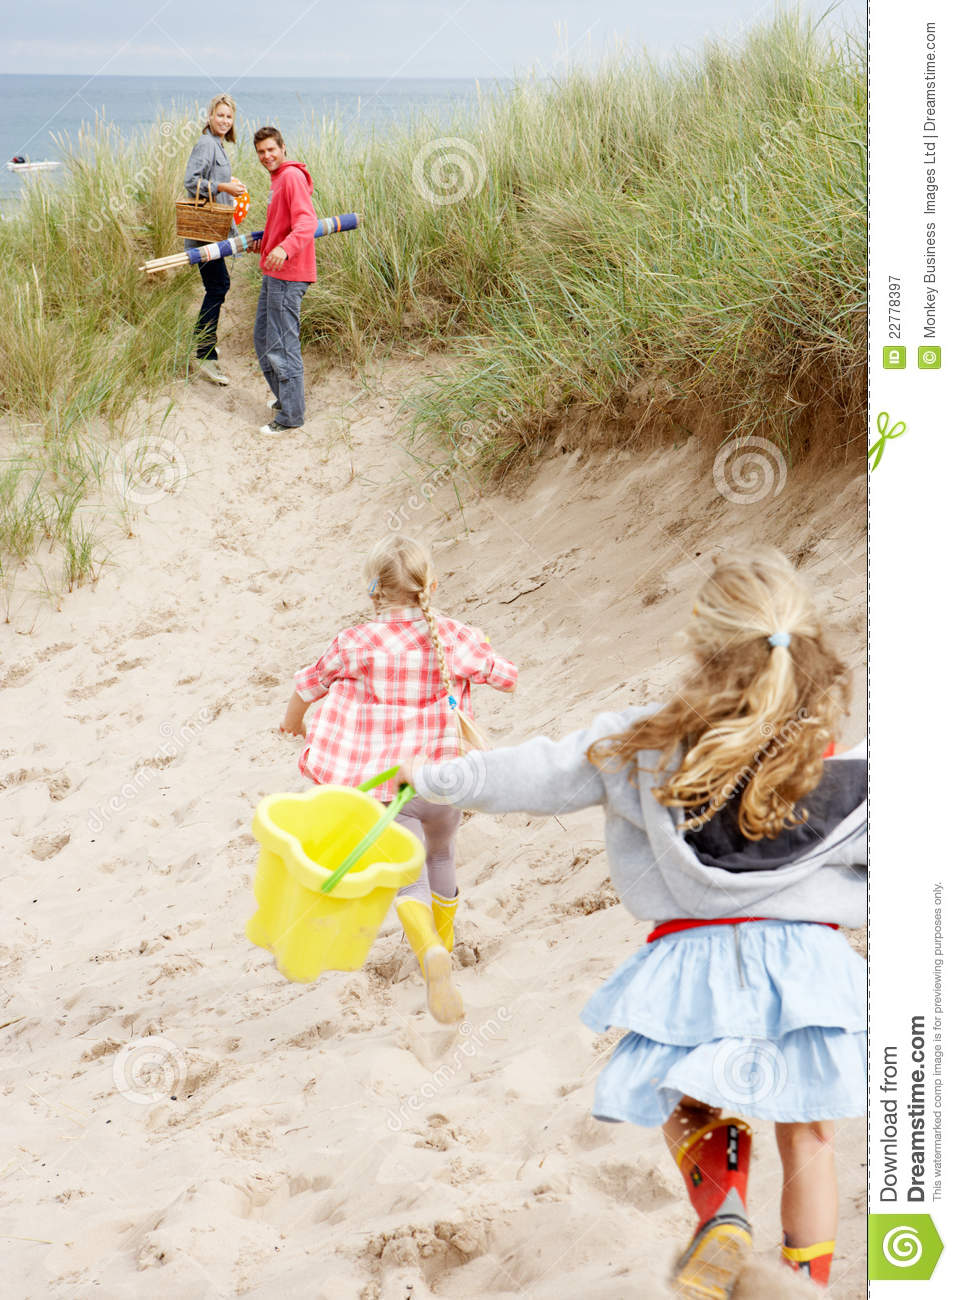 Family Having Fun On Beach Vacation Stock Image - Image of lifestyle ... d75c8a1d10